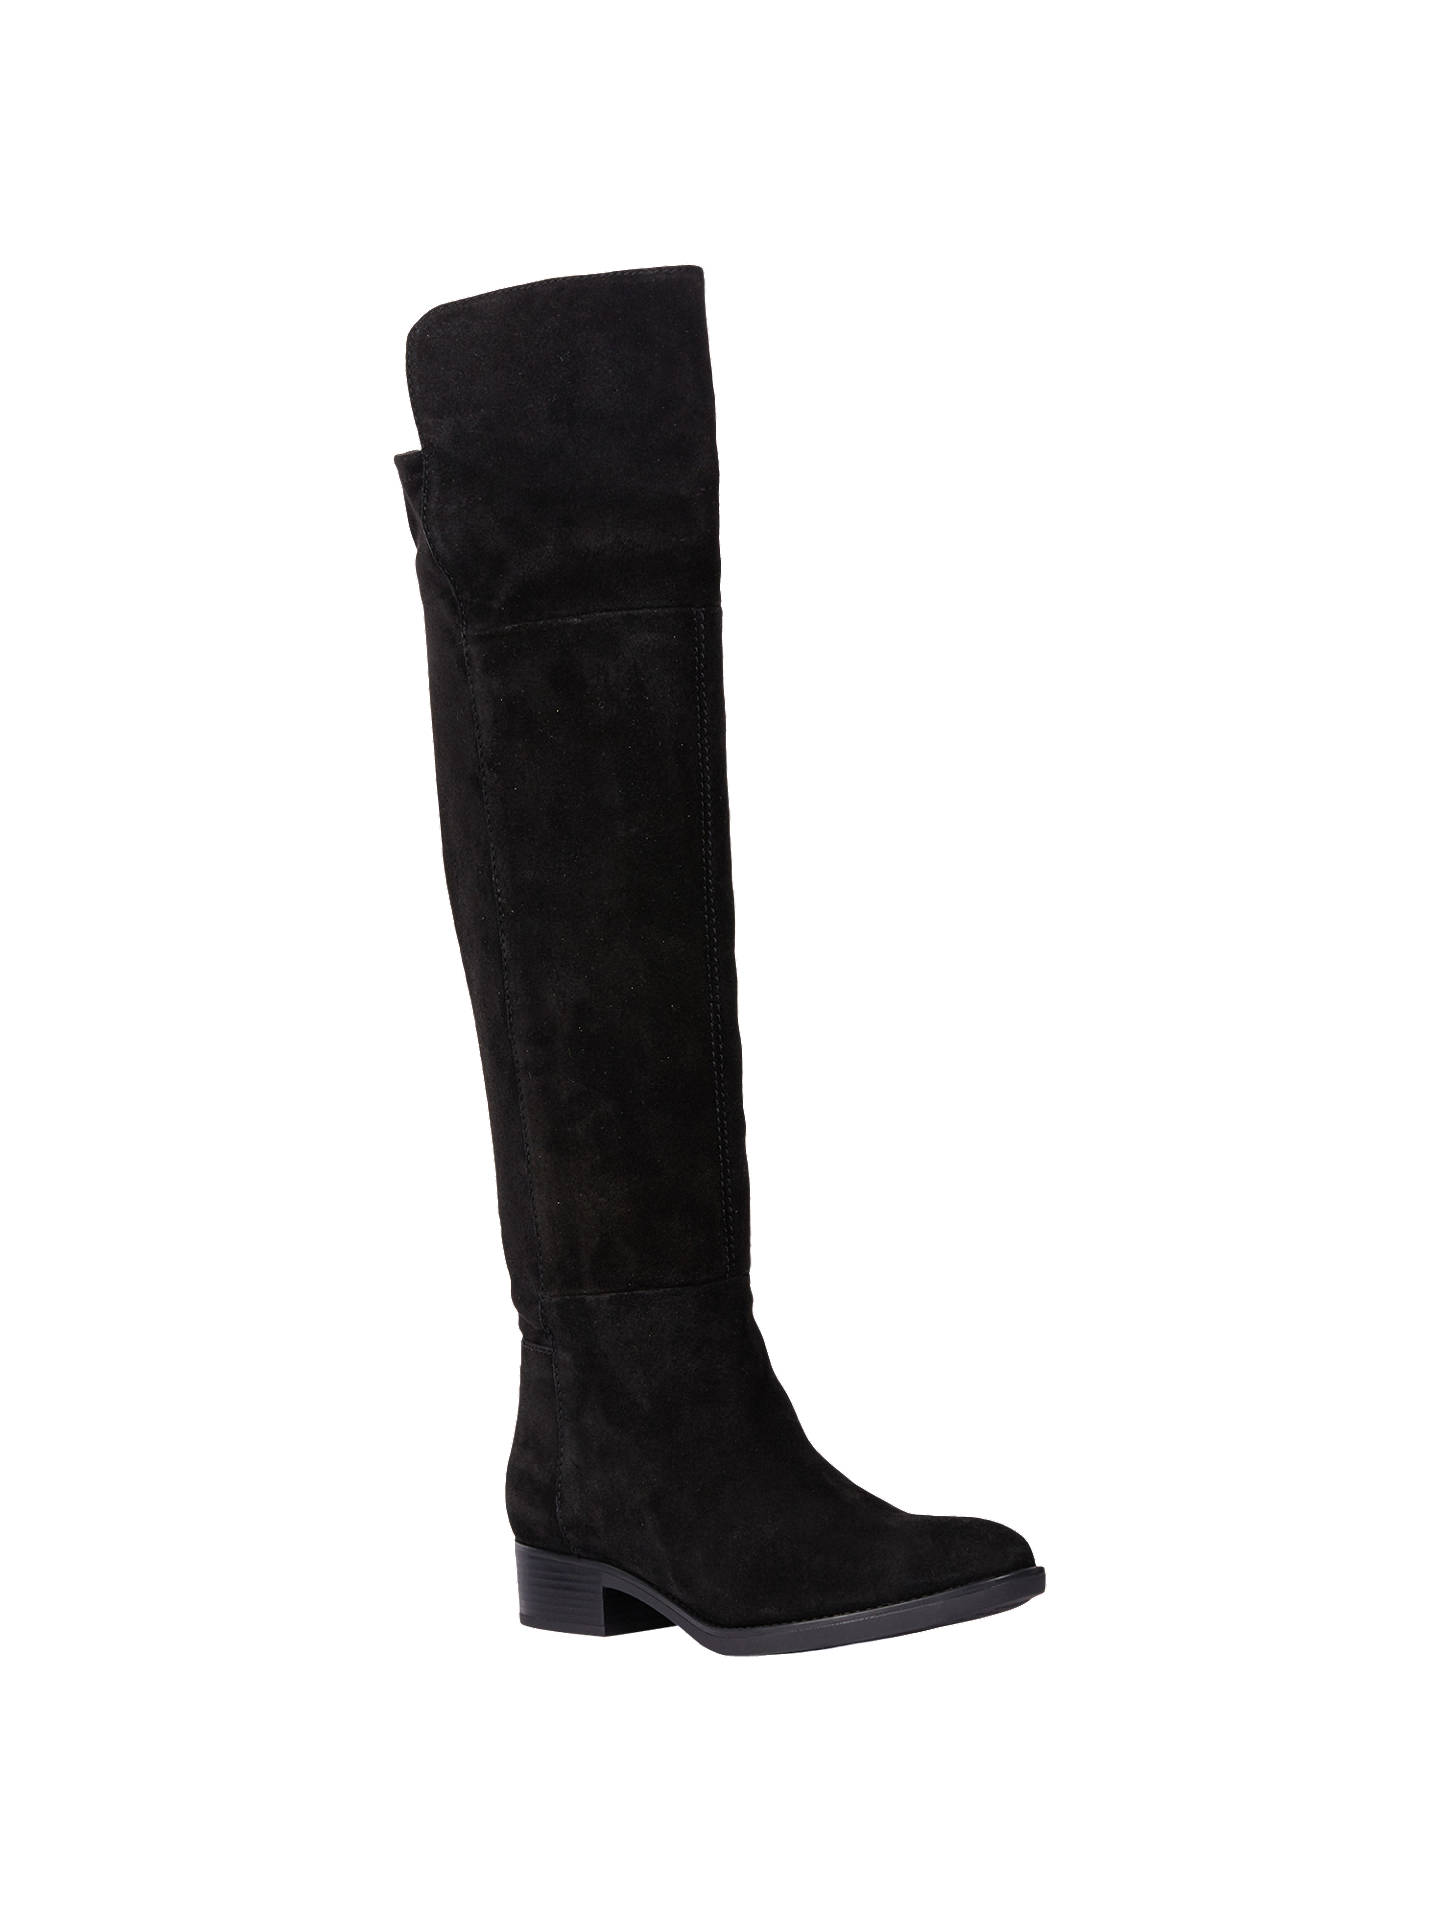 ... BuyGeox Women s Felicity D Block Heeled Knee High Boots 3201c116290